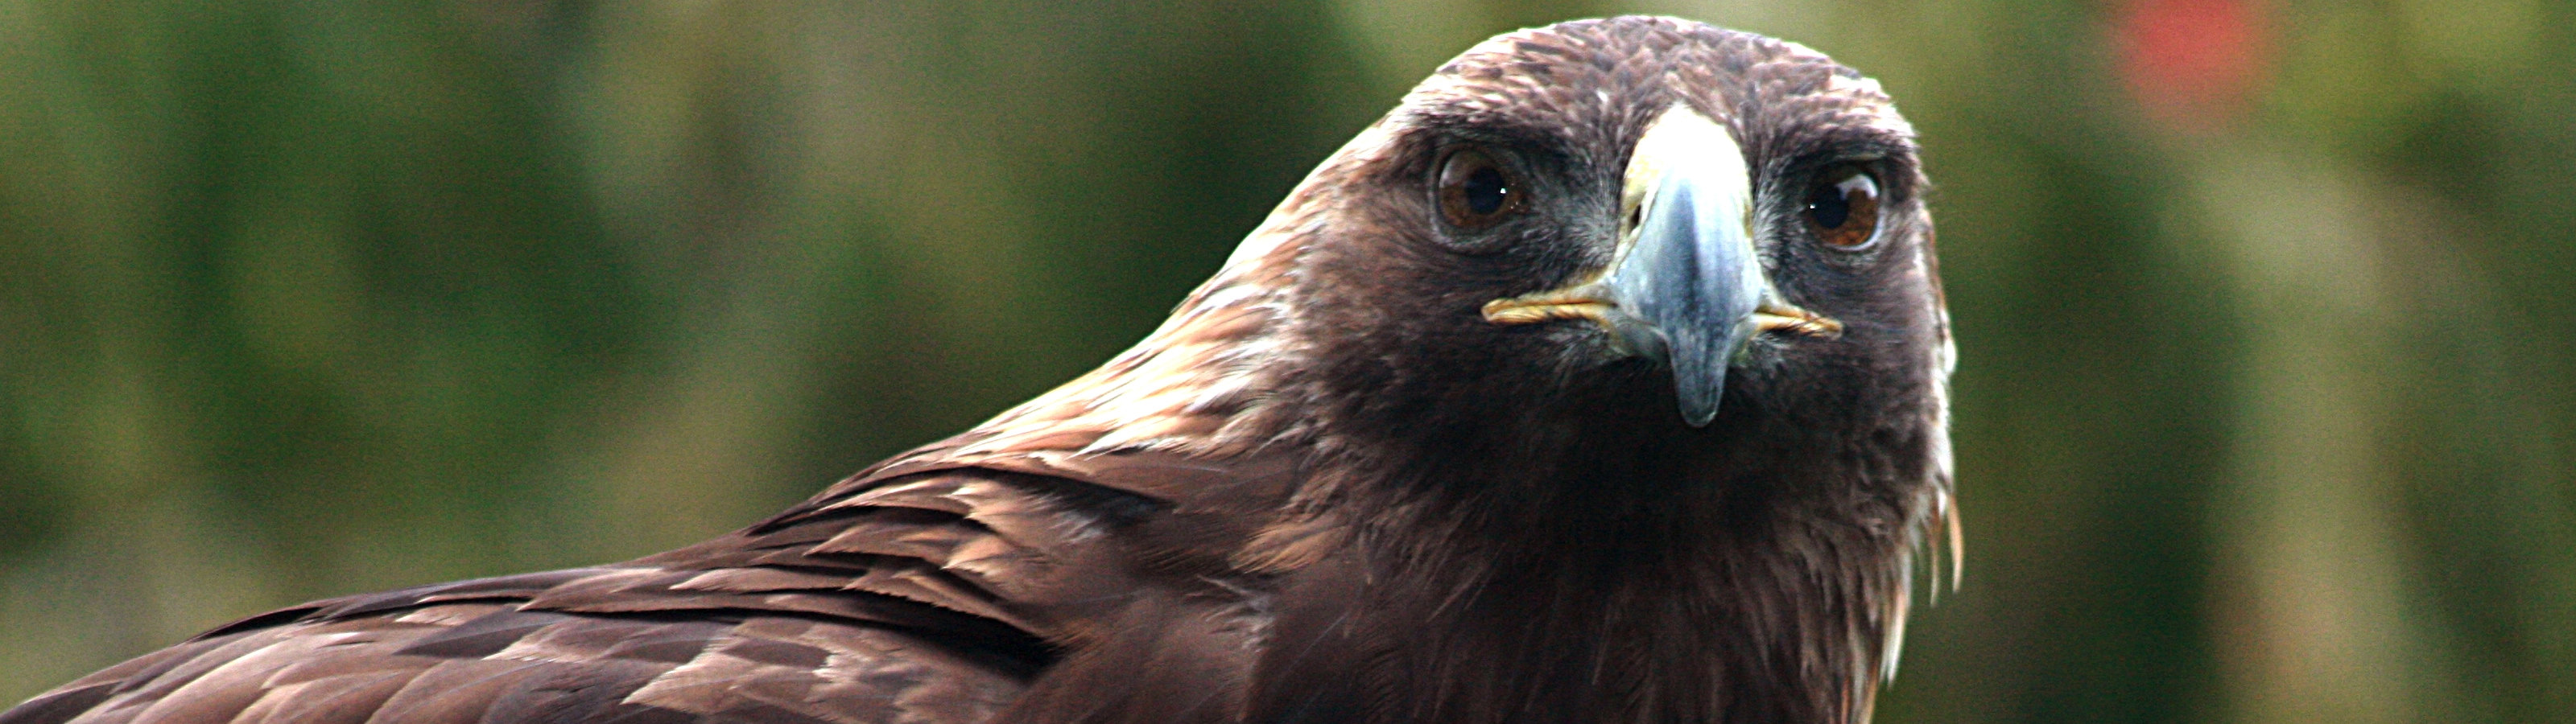 Best Golden Eagle wallpaper ID:299811 for High Resolution dual screen 3200x900 computer